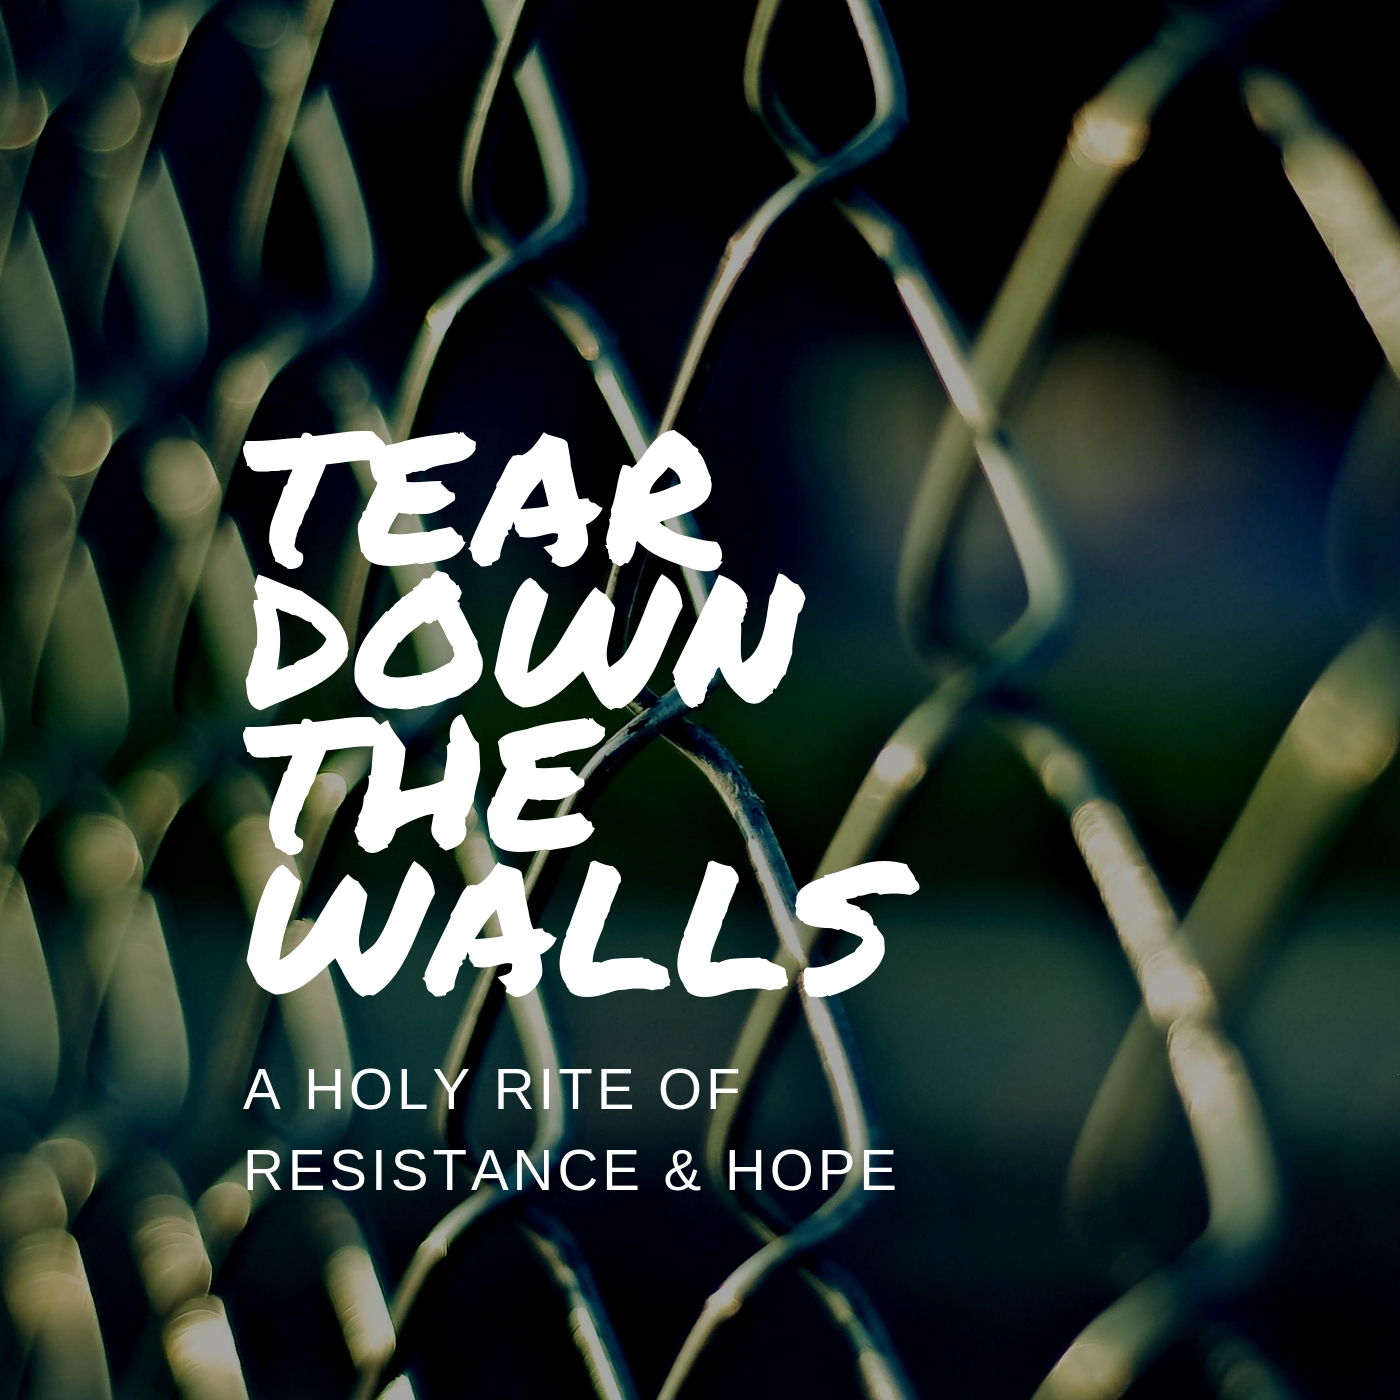 Copy of Tear Down The Walls Liturgy Covers.jpg